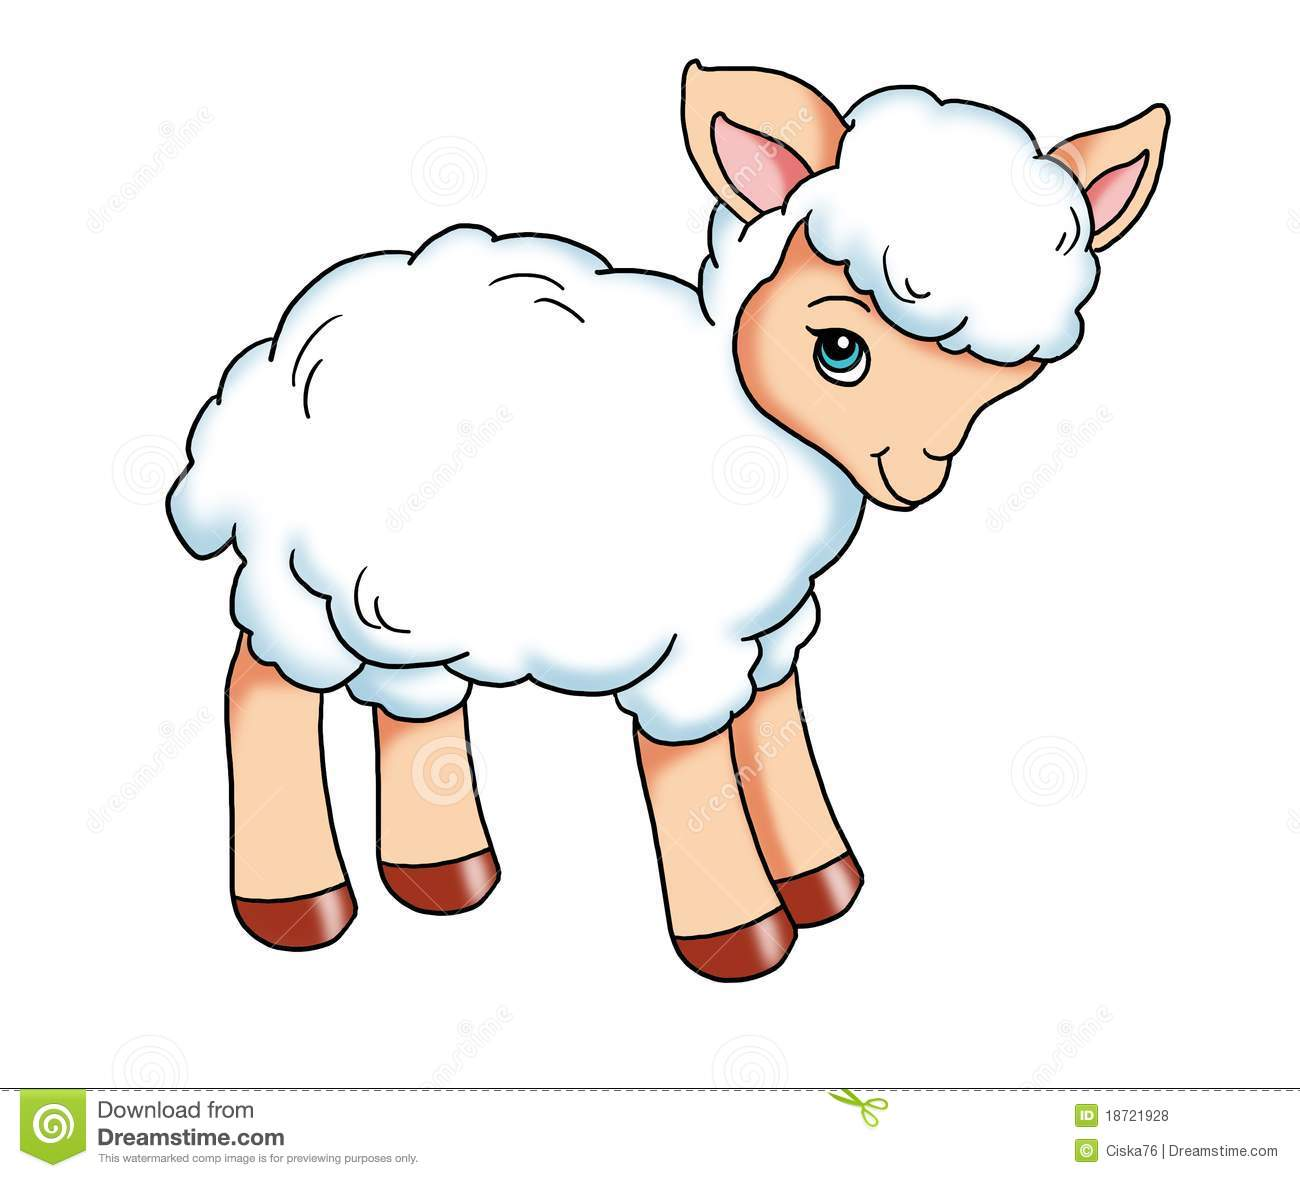 Mama and baby sheep clipart svg library Baby sheep clipart - ClipartFest svg library